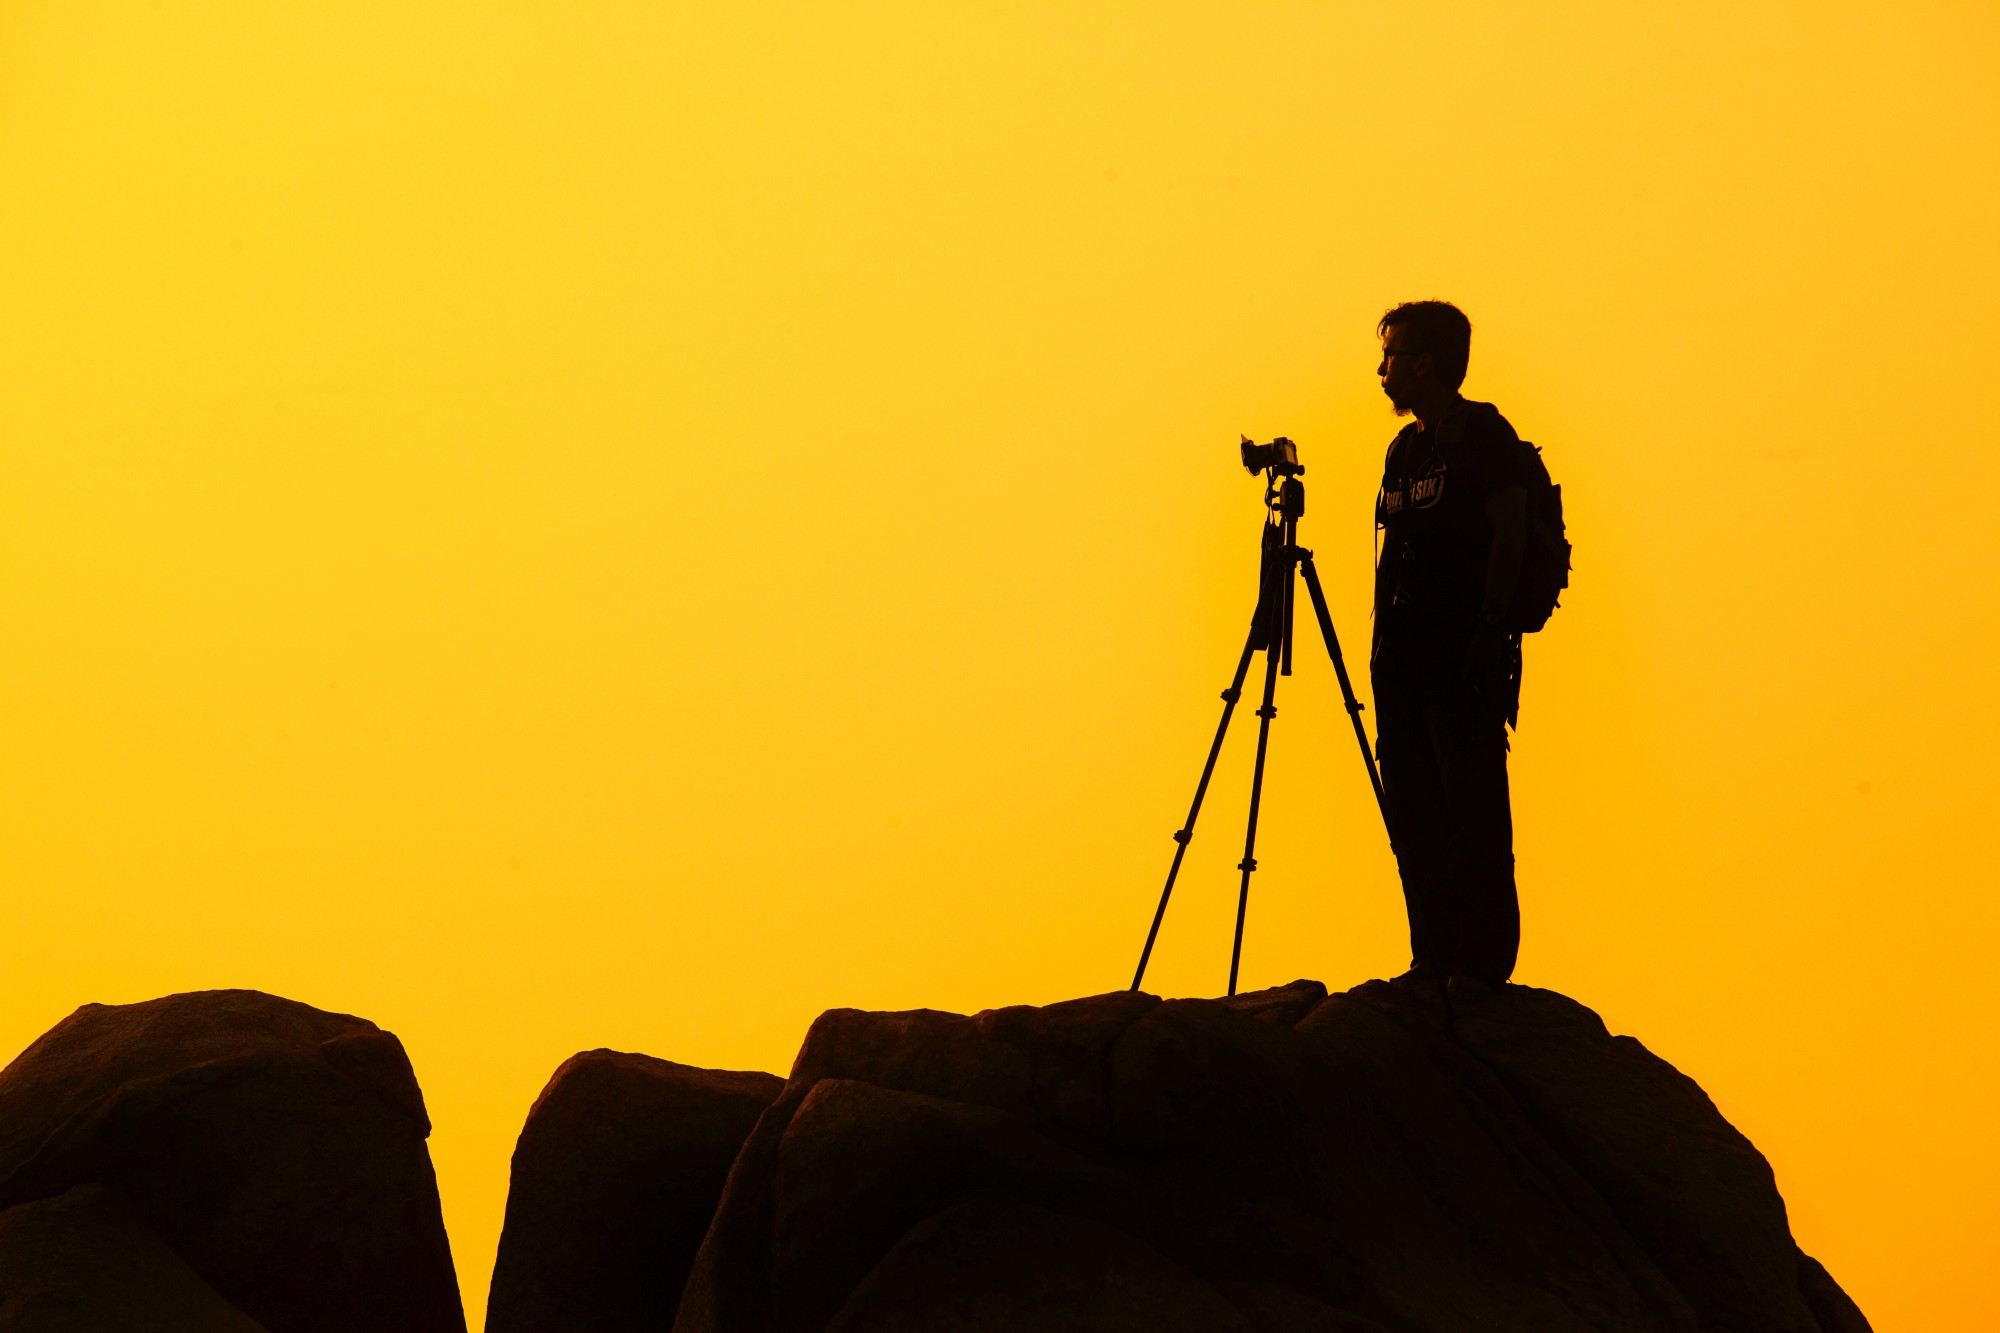 Photographer standing beside tripod silhouette with yellow background